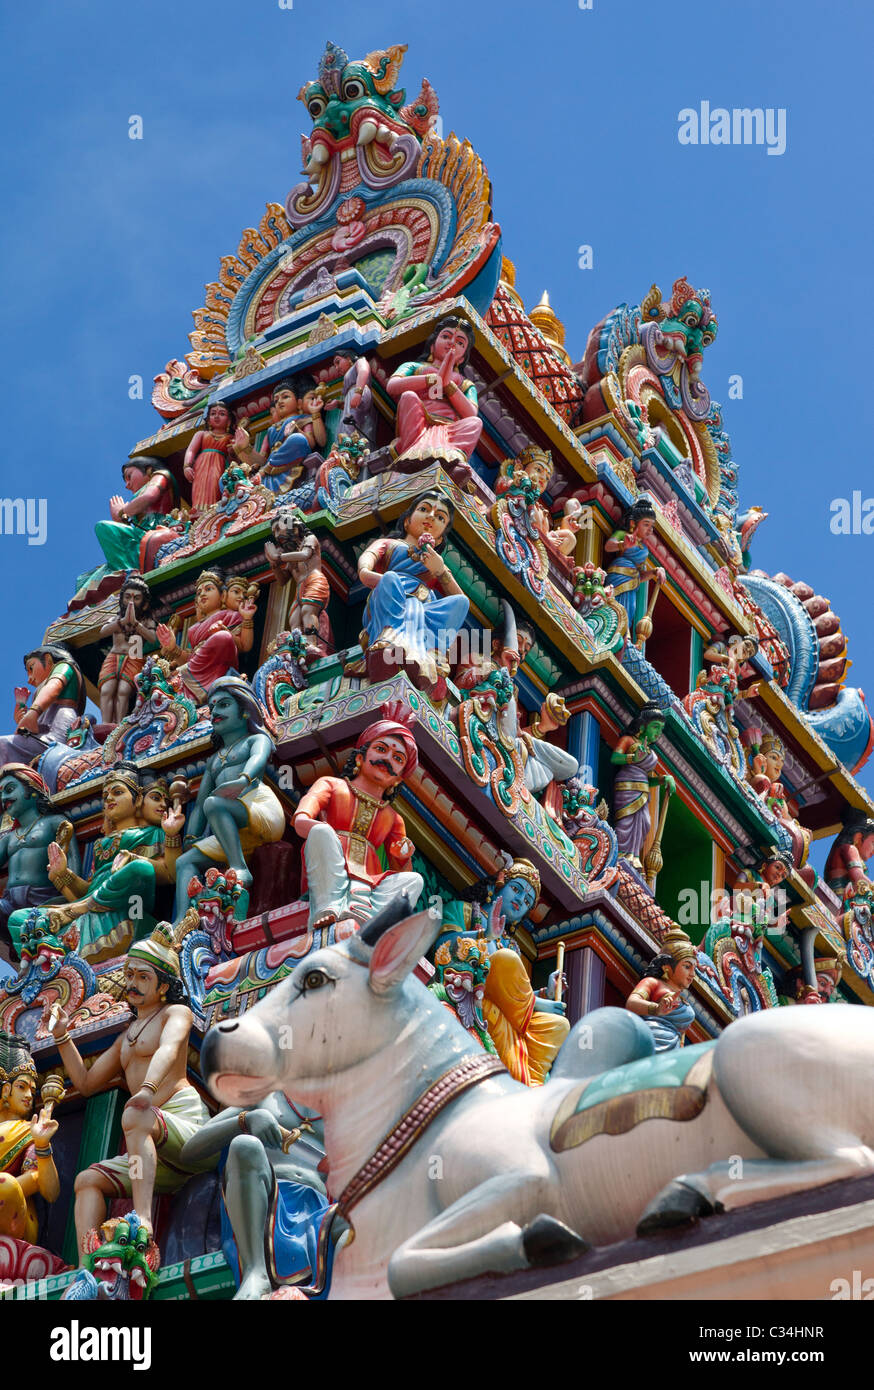 Sri Mariamman Hindu Temple in Singapore - the gopuram (tower) 3 - Stock Image